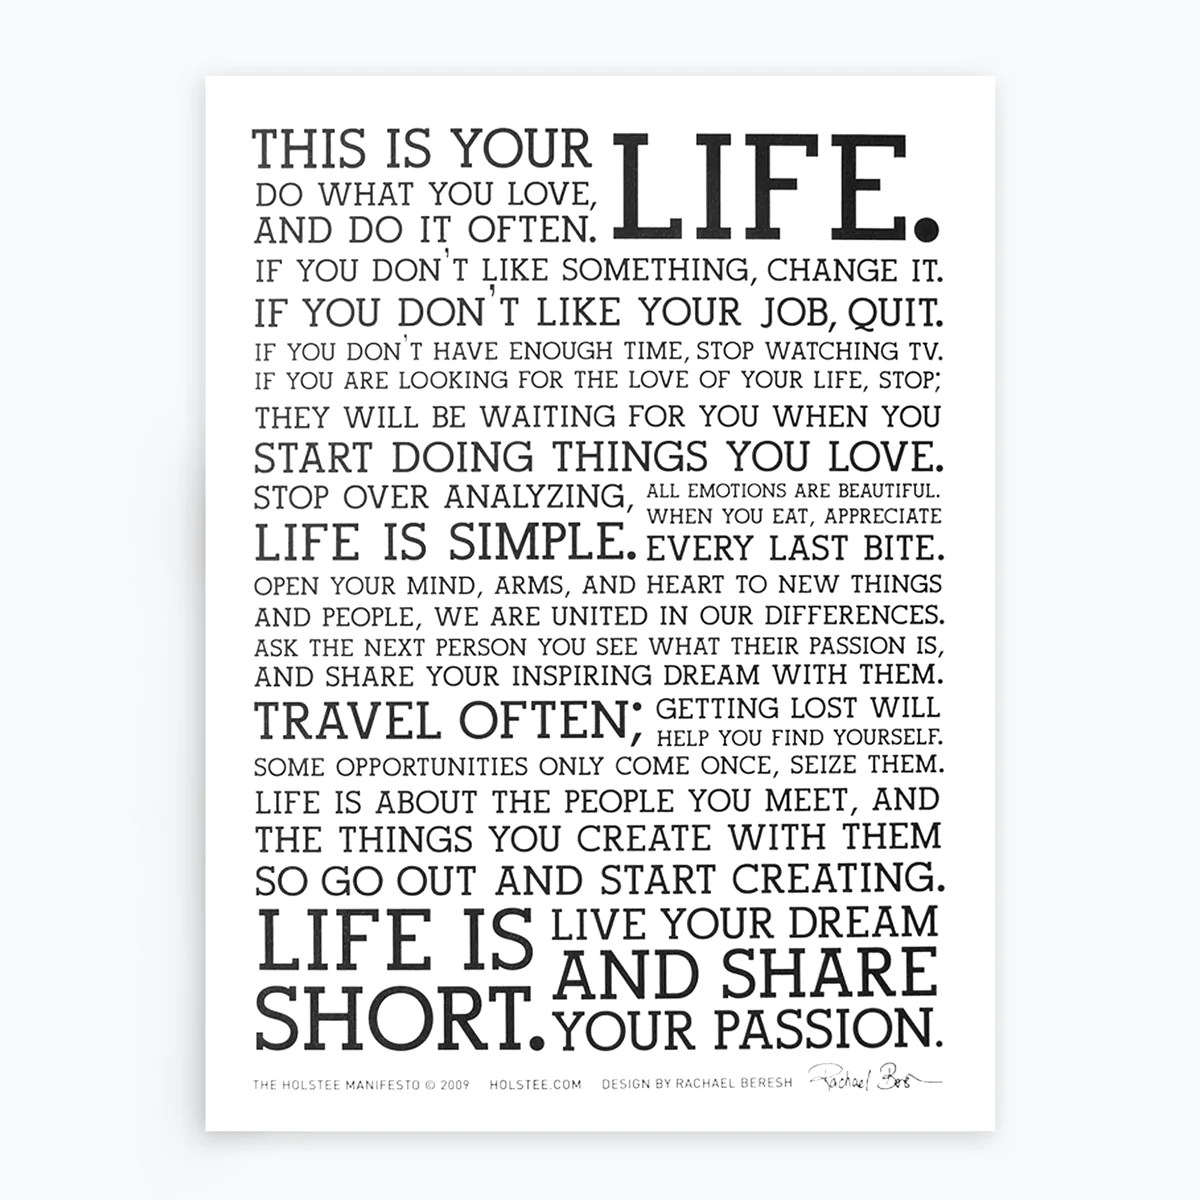 Holstee Manifesto The holstee Manifesto | This Is Your Life. | holstee